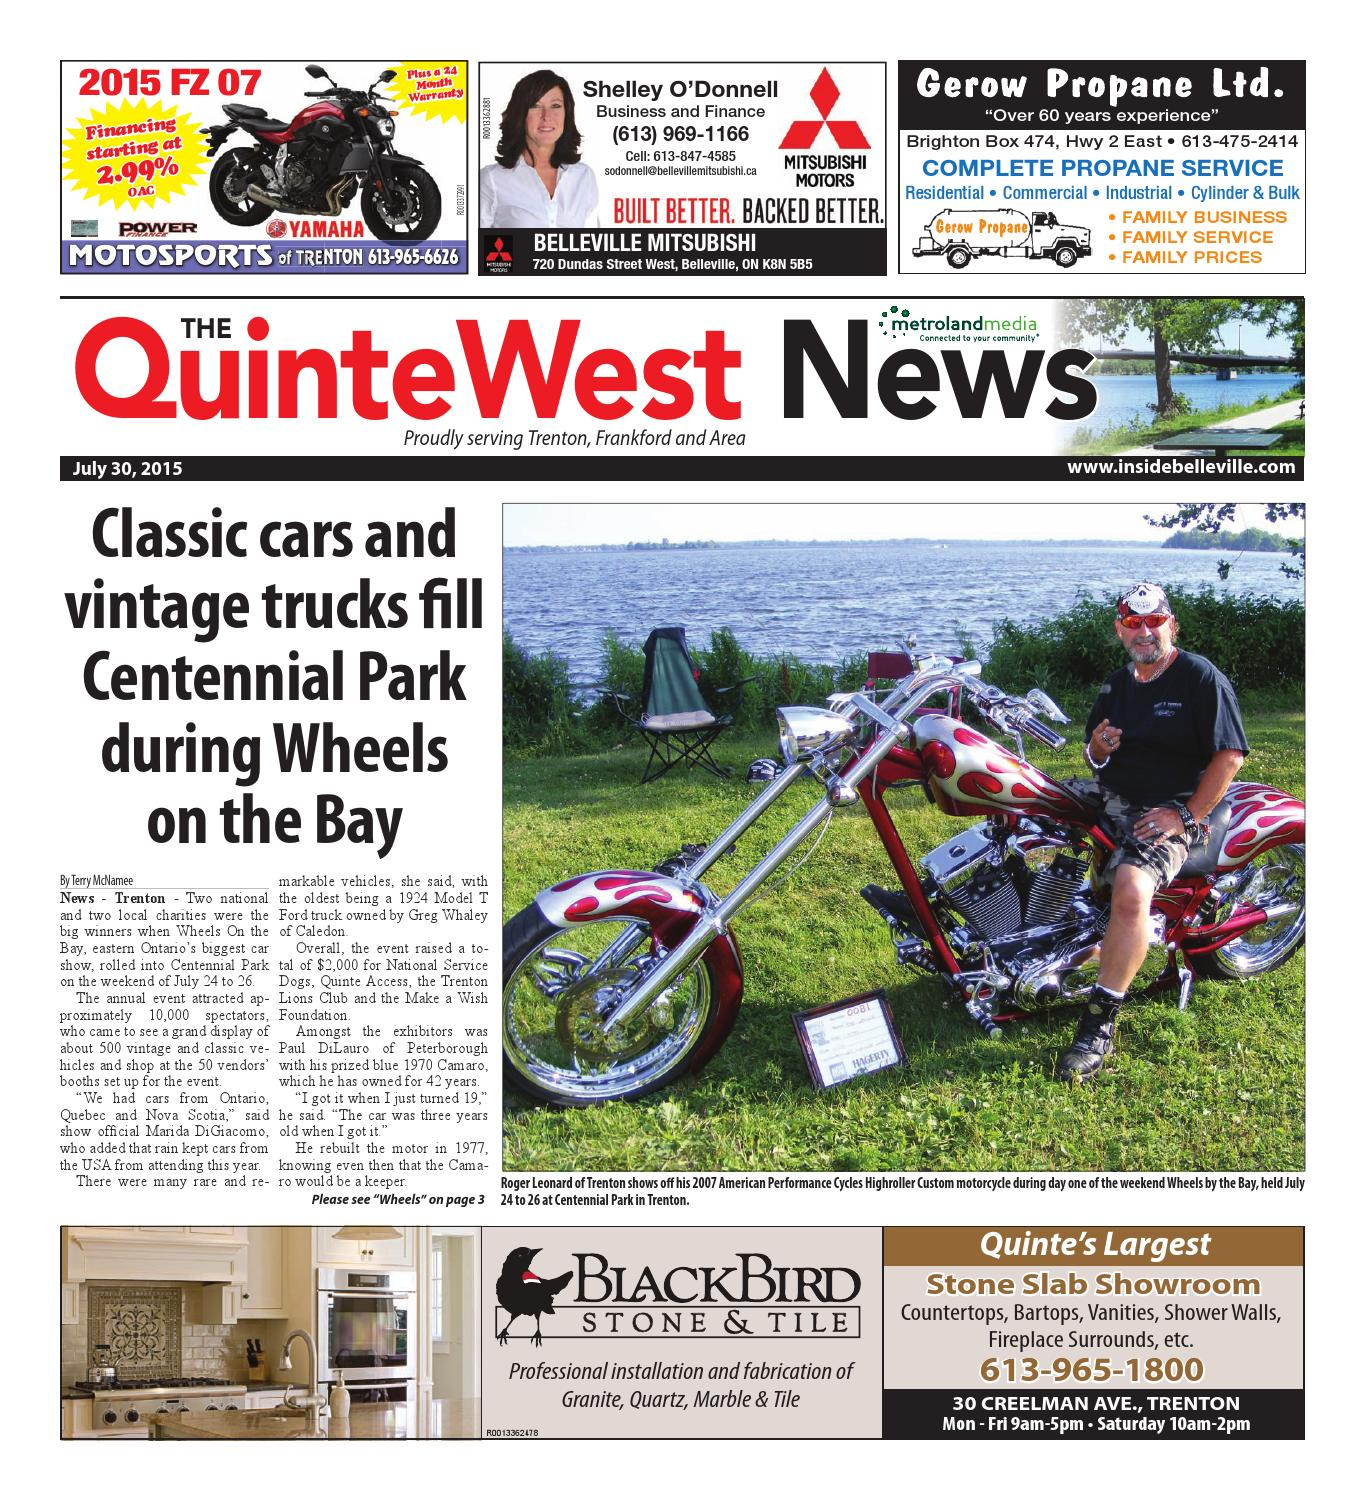 Quinte073015 by Metroland East - Quinte West News - issuu